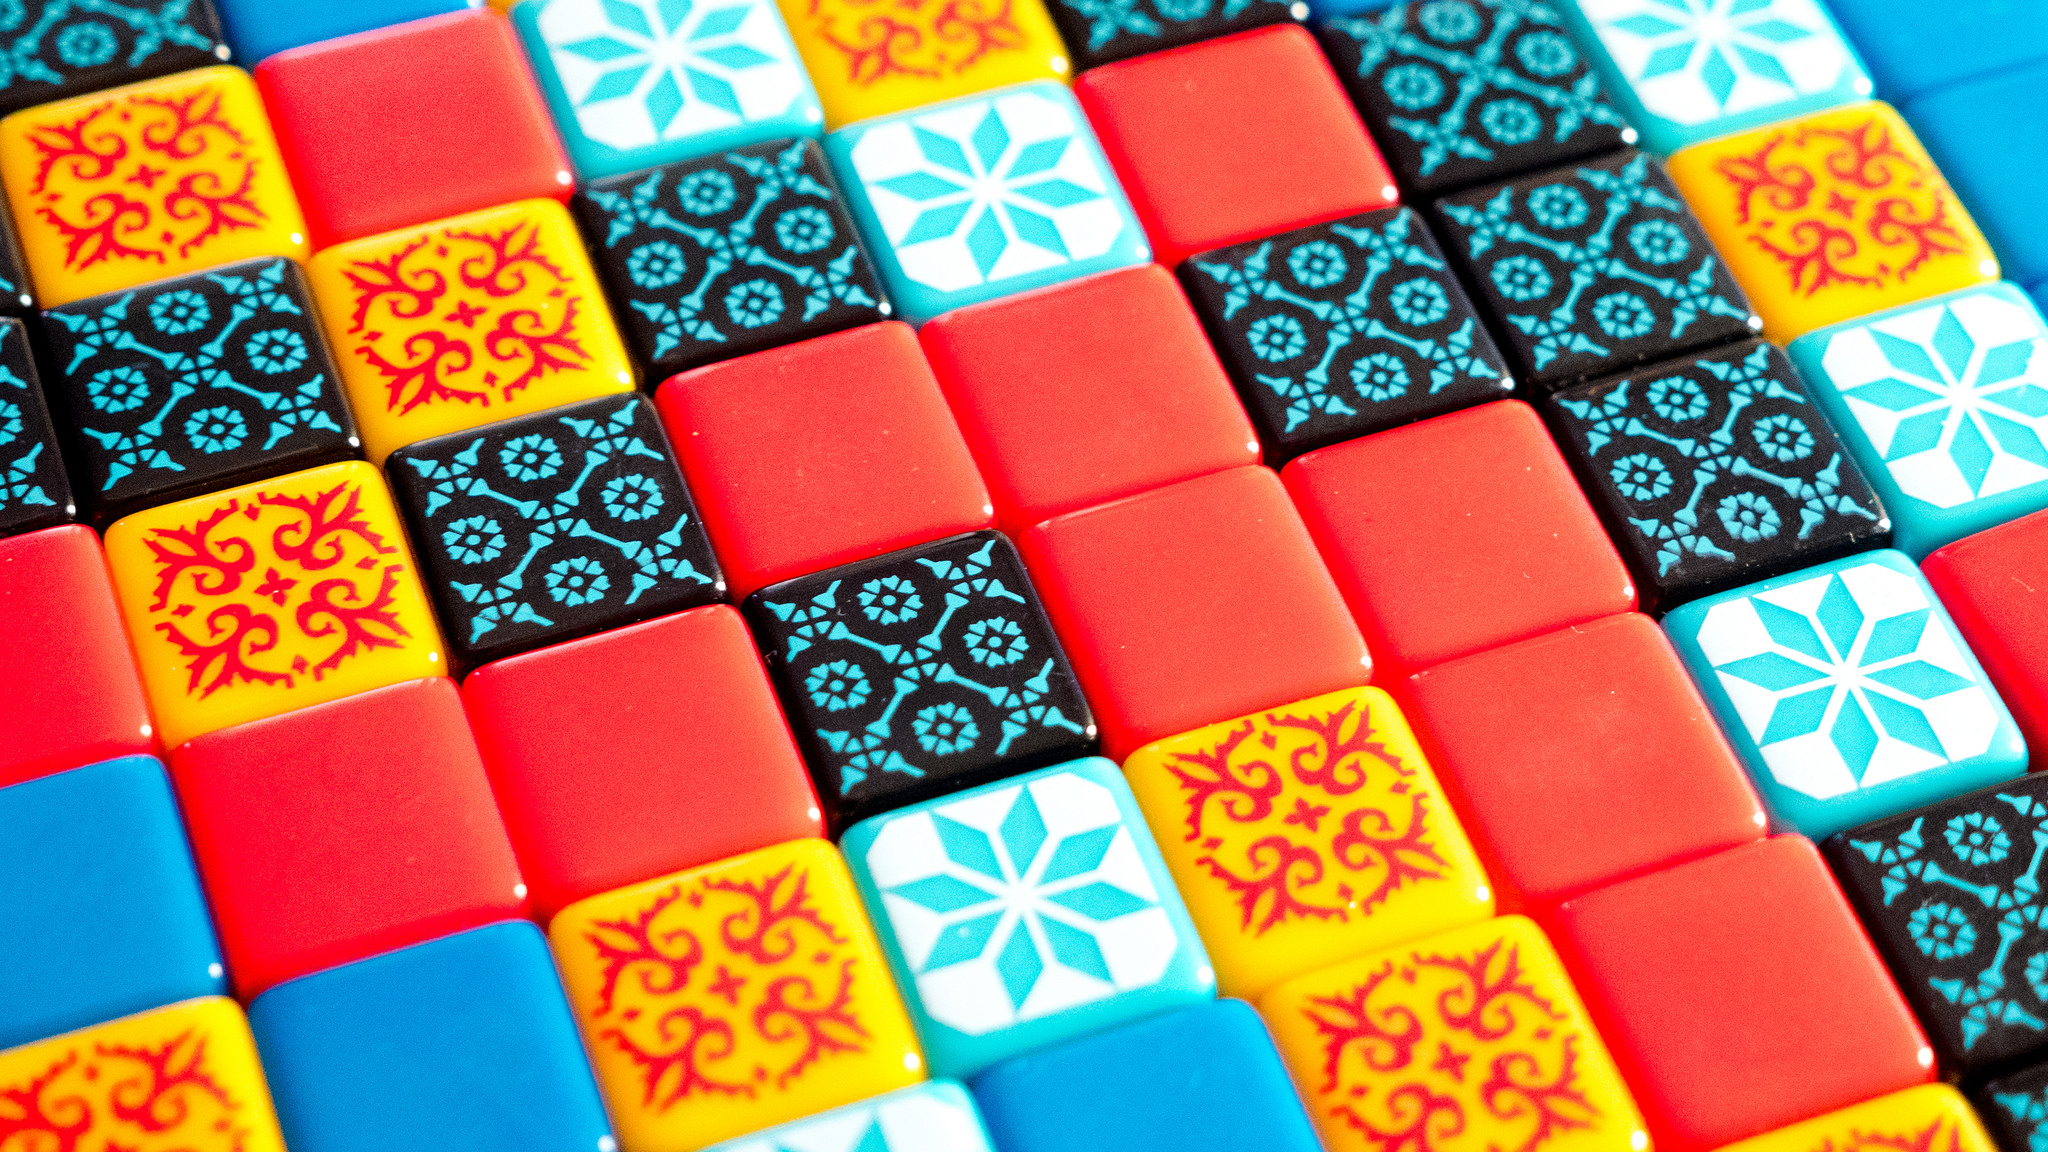 Azul - a photo that shows up time and time again in the tabletop gaming news cycle